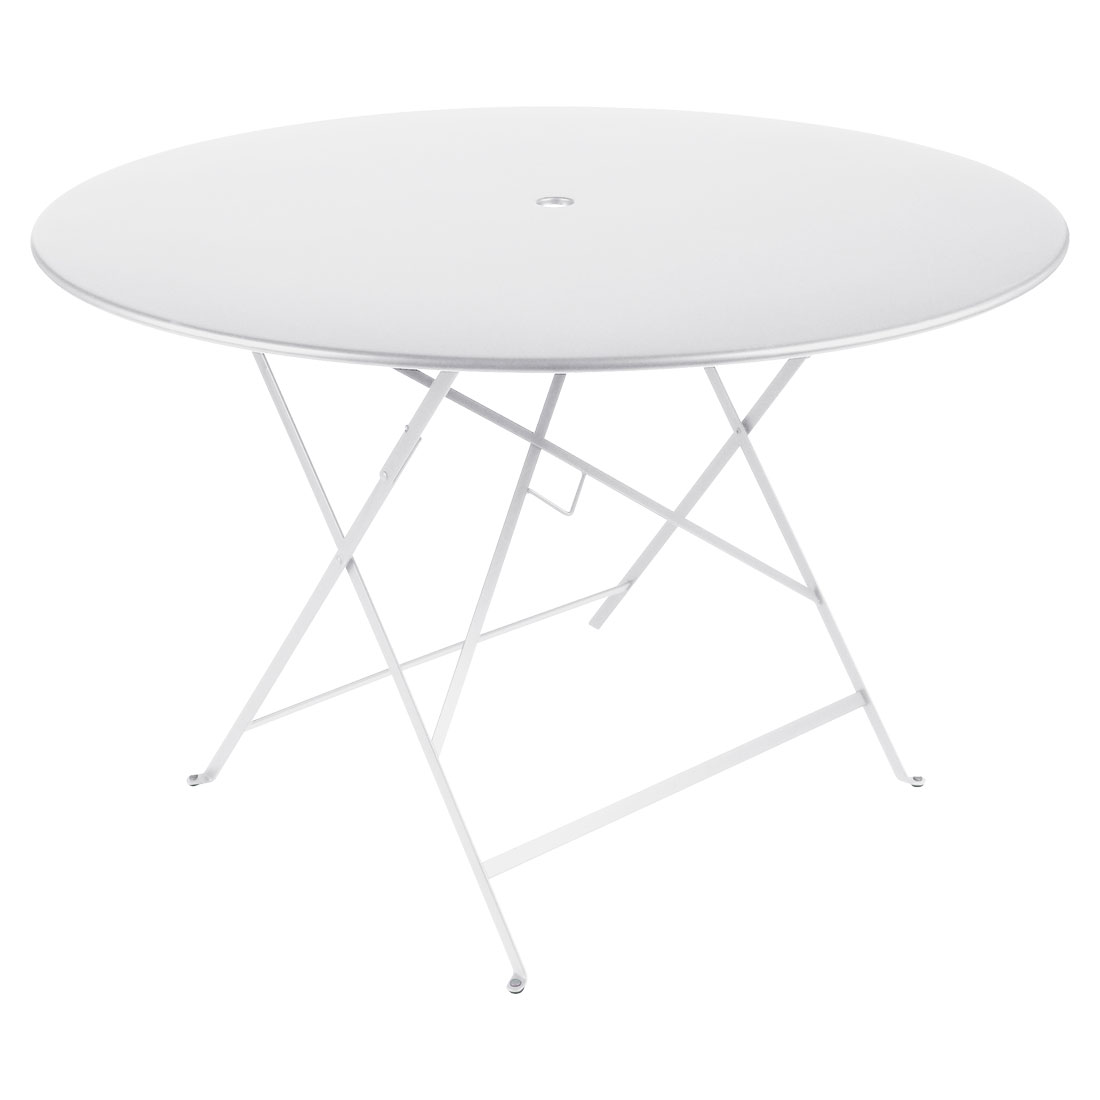 ... Fermob Bistro Folding Table 117cm Dia Top   With Parasol Hole ...